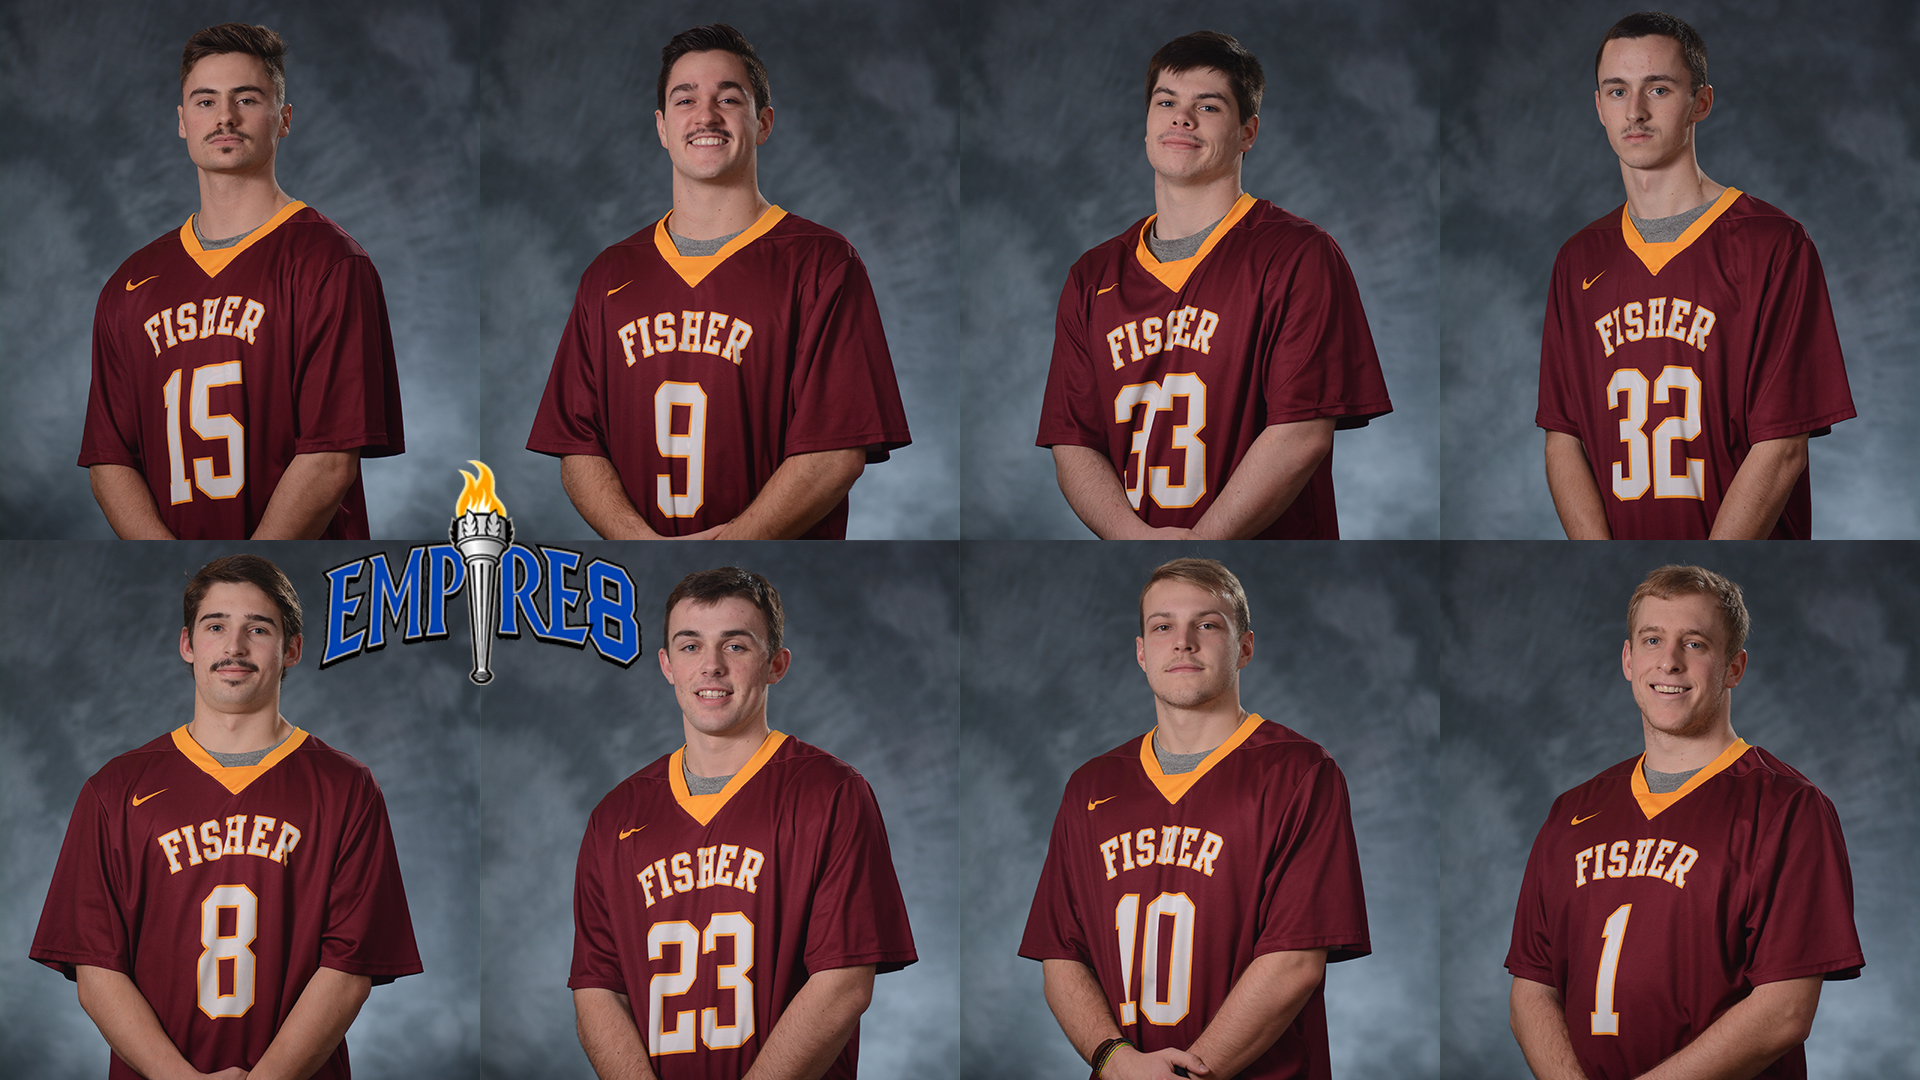 265eaed51a Eight From Men s Lacrosse Earn Empire 8 Postseason Honors - St. John ...